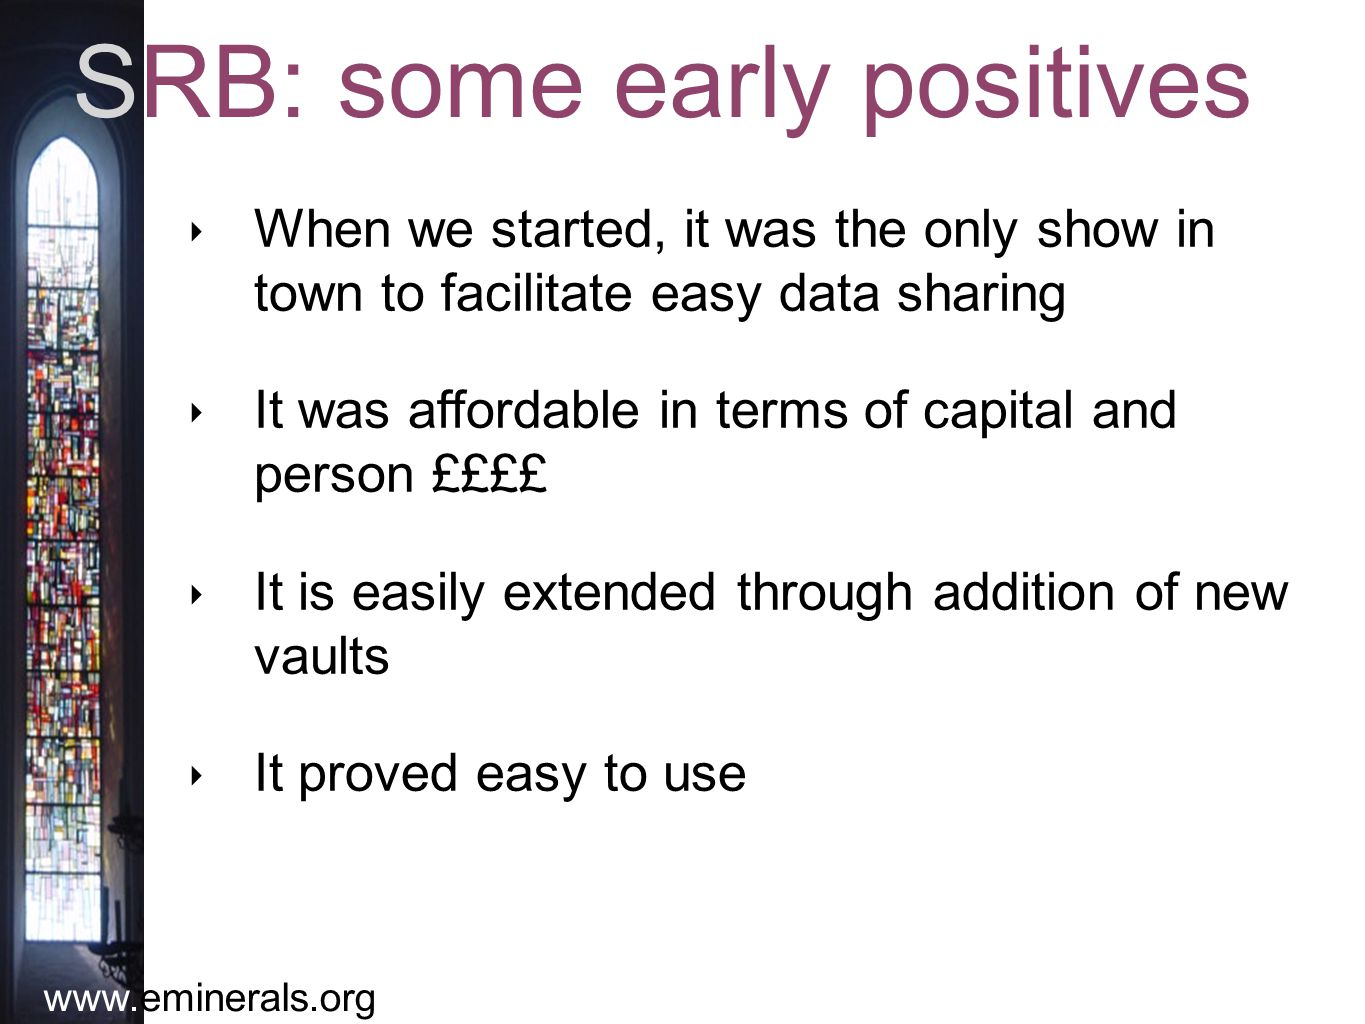 www.eminerals.org SRB: some early positives ‣ When we started, it was the only show in town to facilitate easy data sharing ‣ It was affordable in terms of capital and person ££££ ‣ It is easily extended through addition of new vaults ‣ It proved easy to use